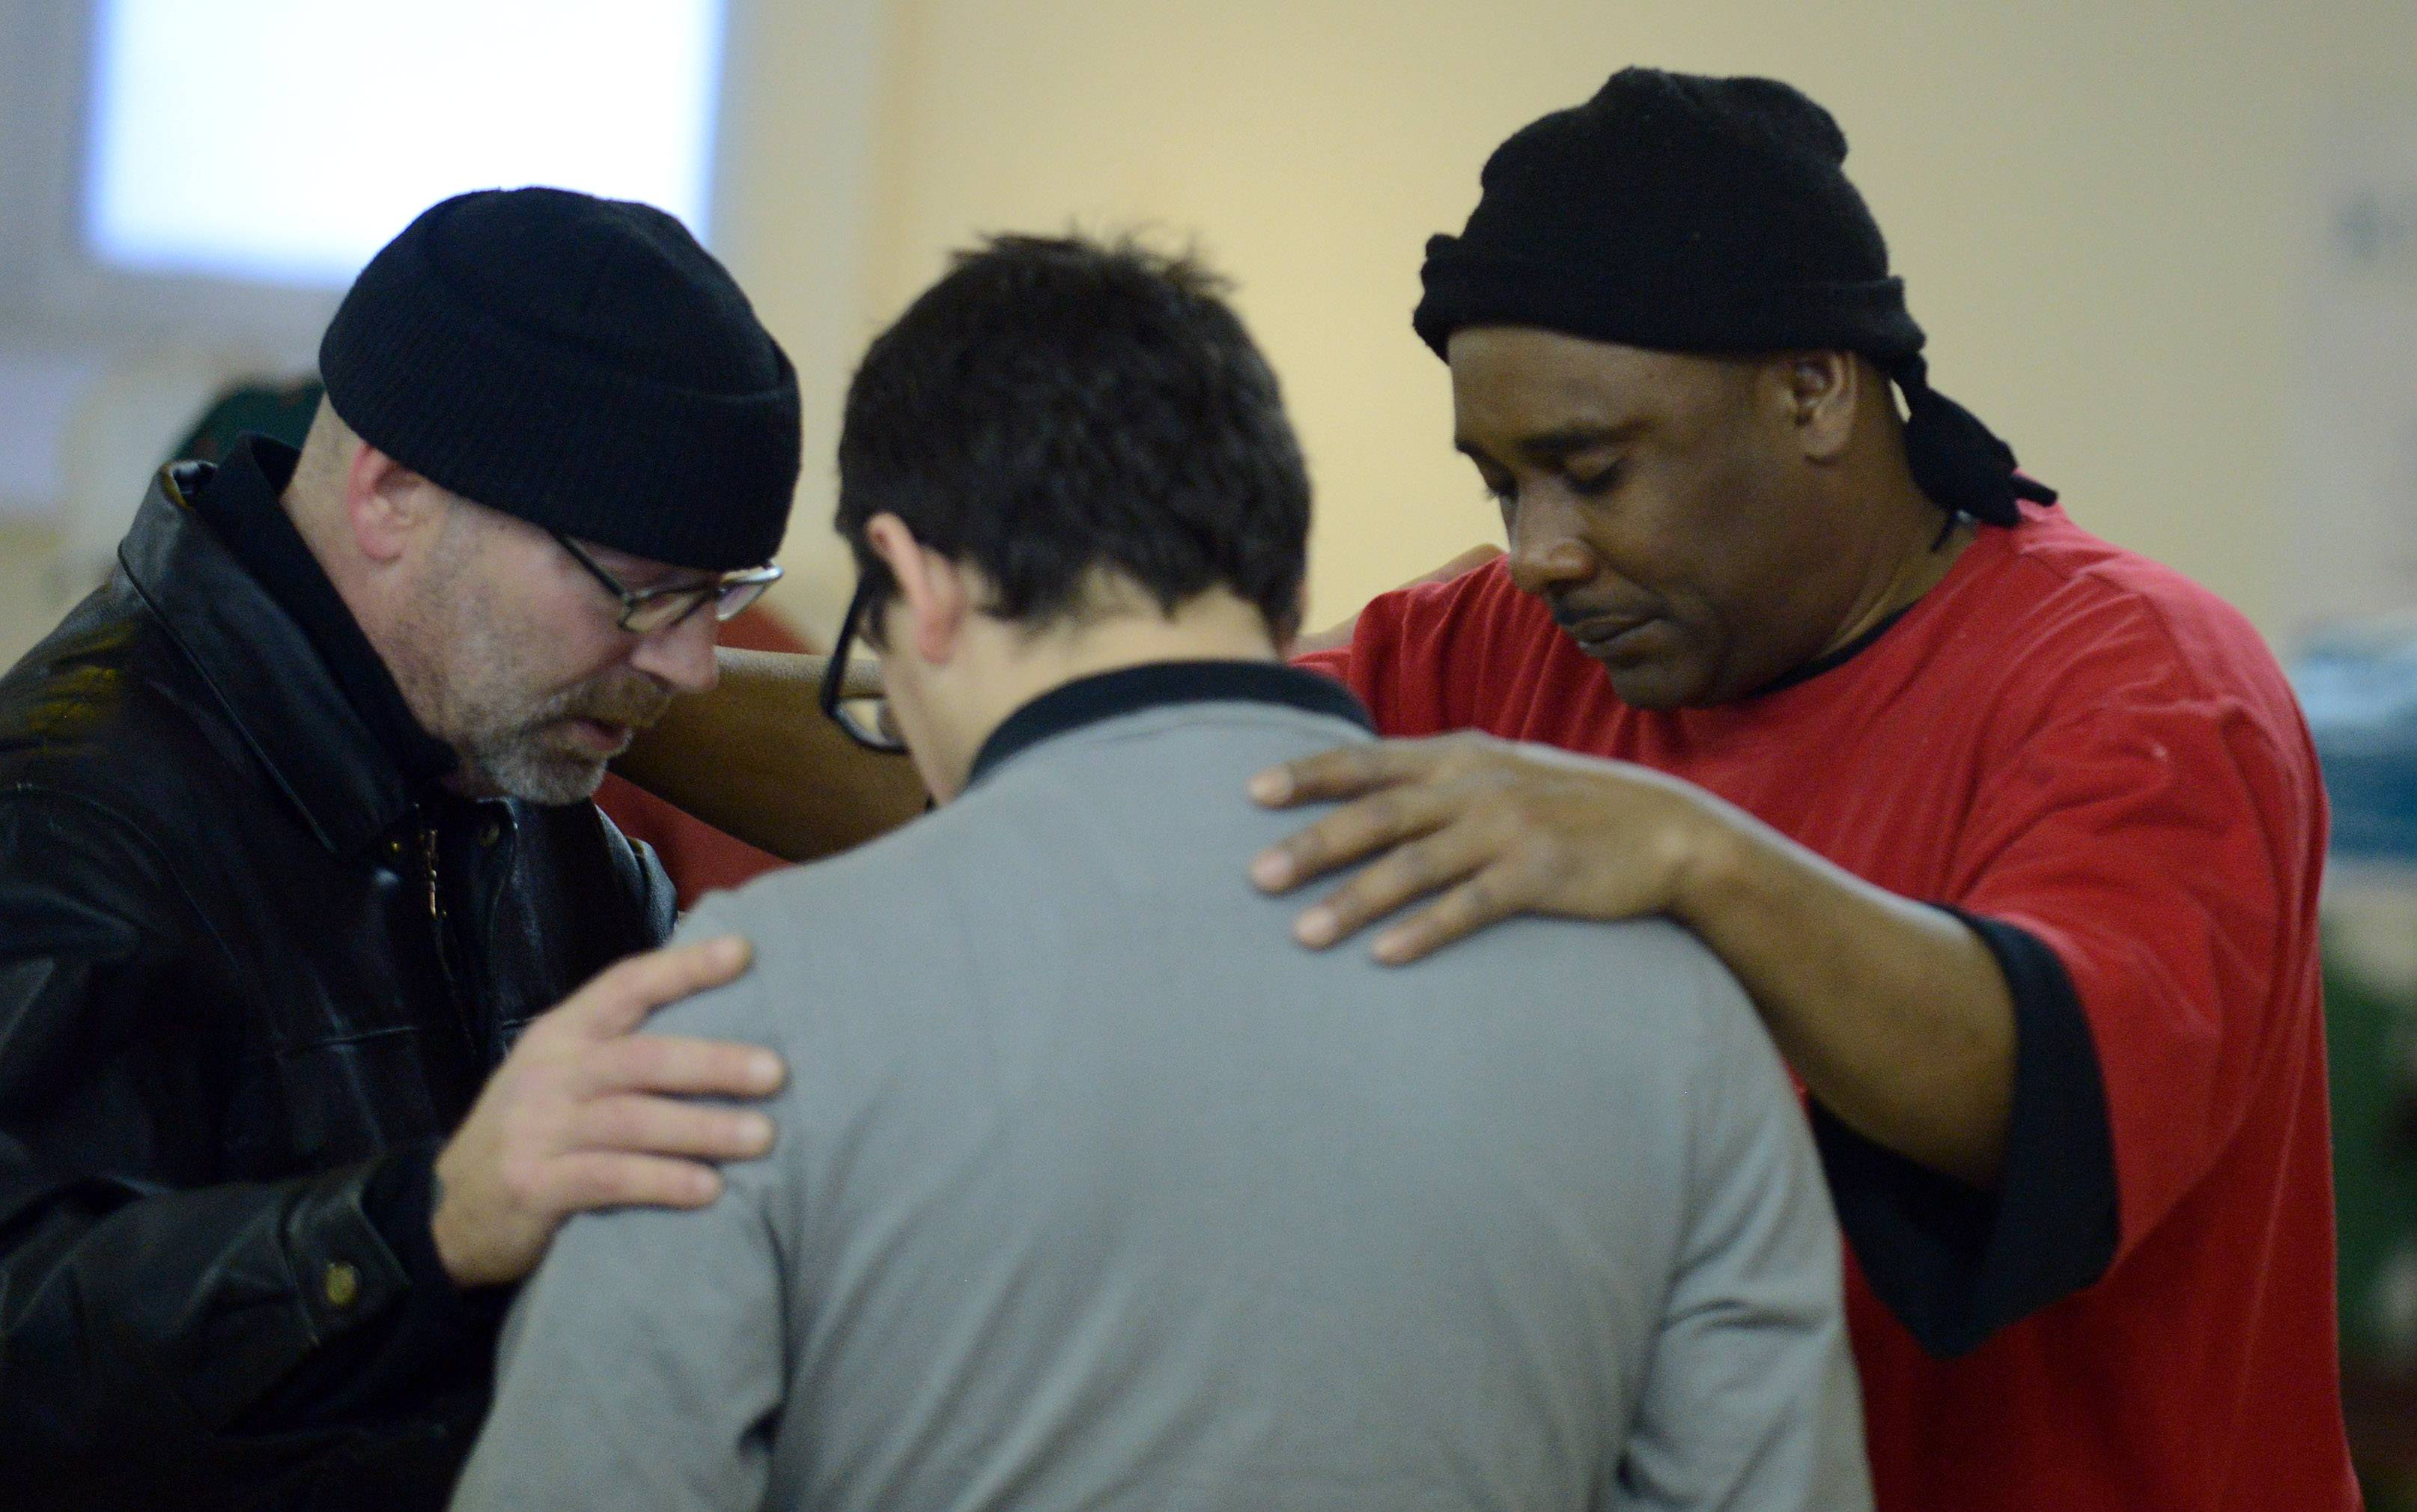 Greg Schiller of Street Reach, left, and Edward Hayes, right, pray with a young man with a drug problem who they persuaded to go to rehab during the breakfast ministry at Vineyard Church of Elgin.